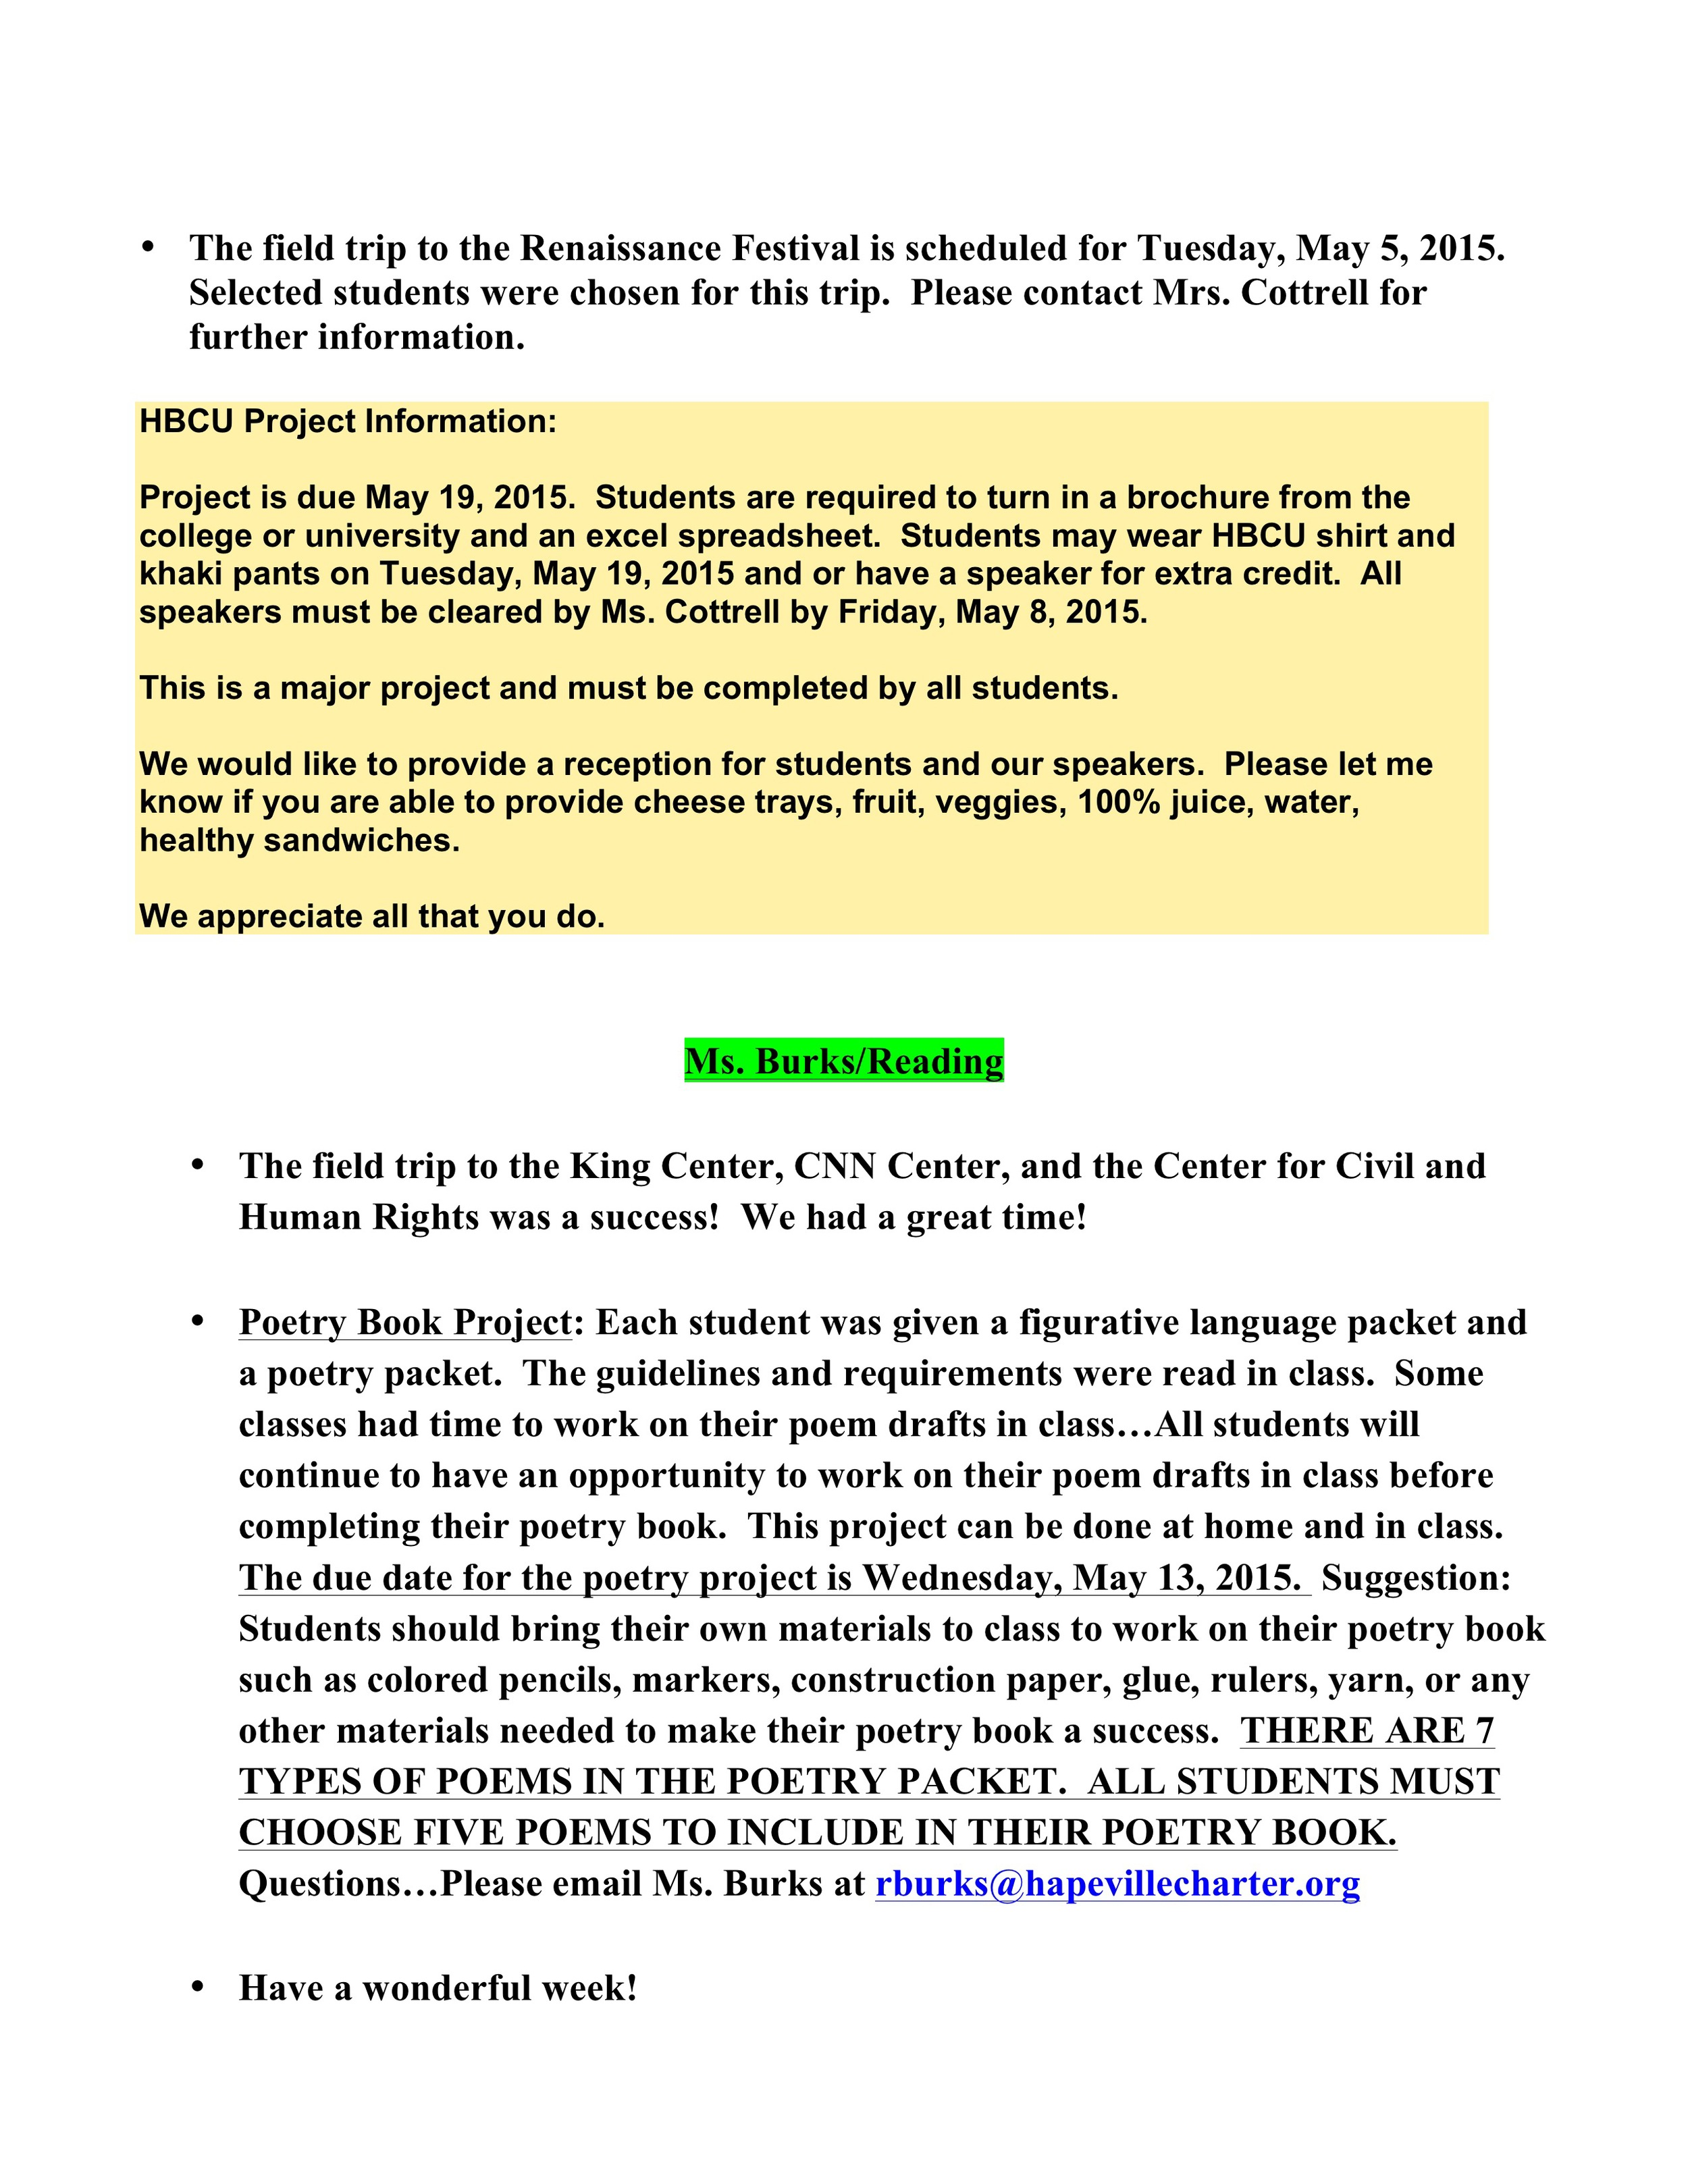 Newsletter Image1...Newsletter for the week of May 4-8, 2015 2.jpeg